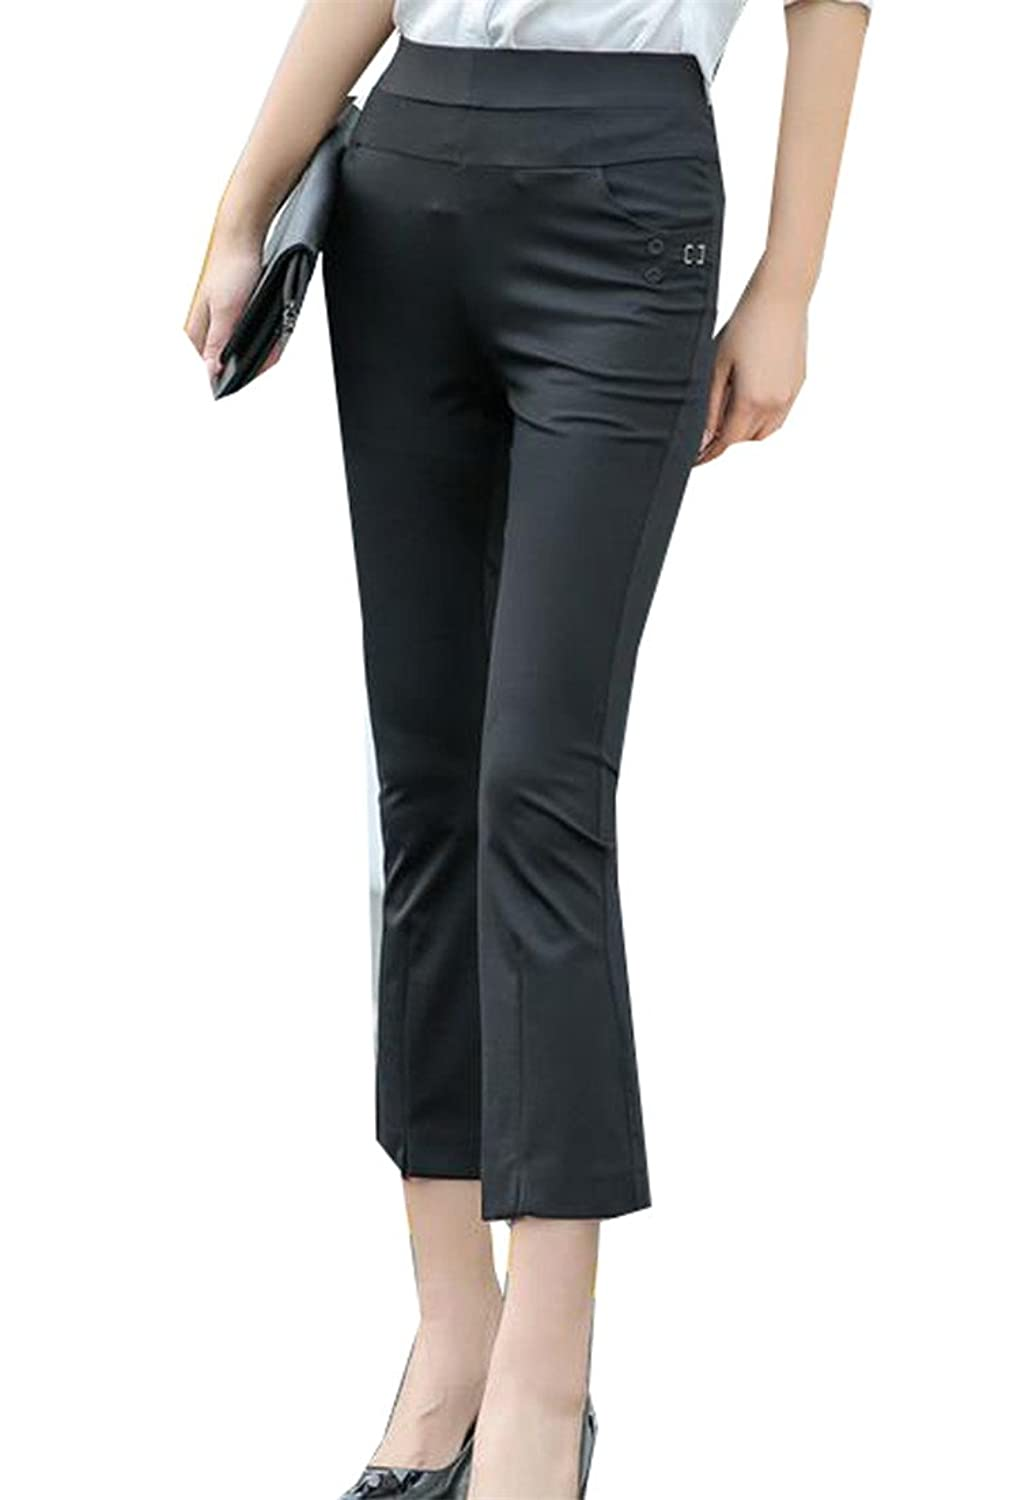 Cruiize Women's Casual Slim Fit Flare High Waist Ankle Length Pants